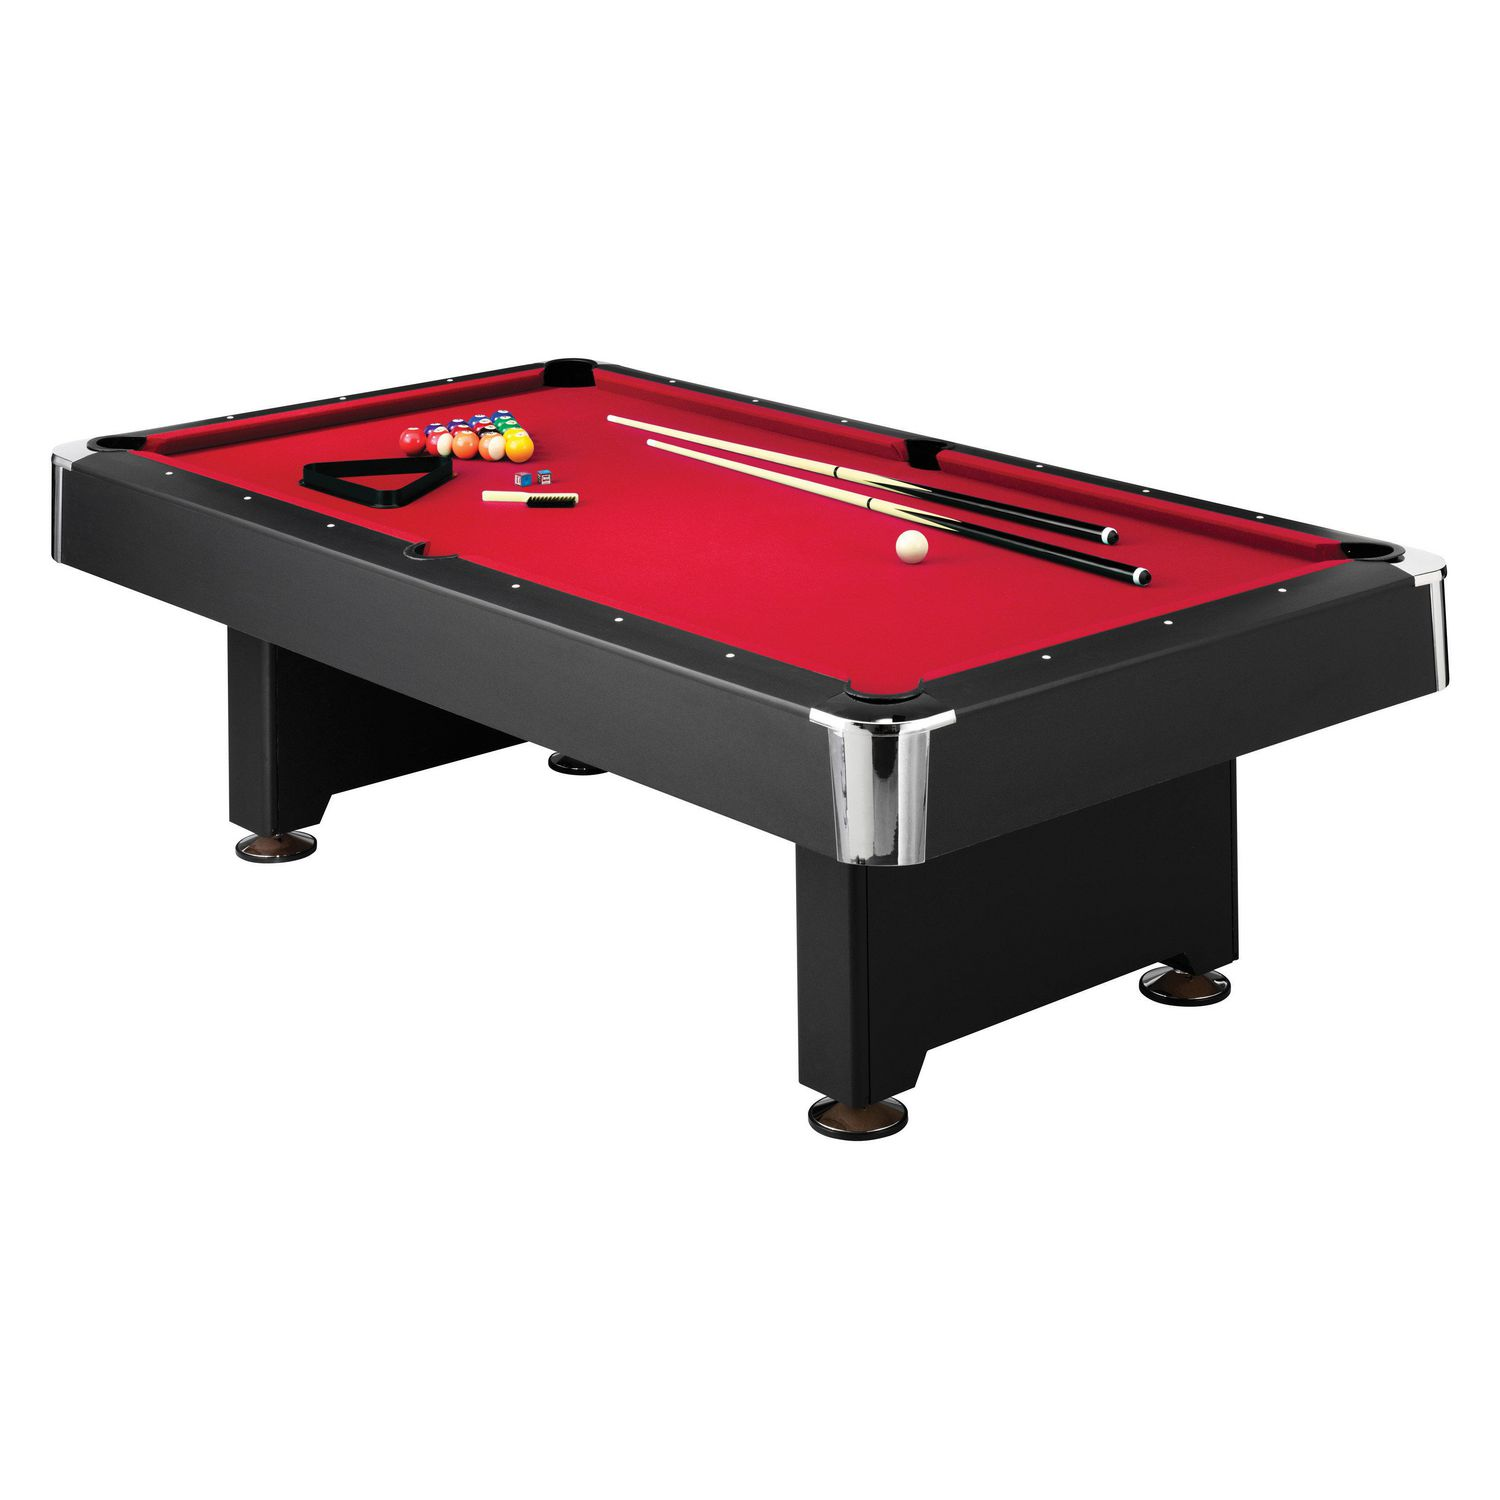 and room to american pong ping for tables made combo theme convert used sale kitchen table pool online against regulation dining buy cheap wonderful snooker set